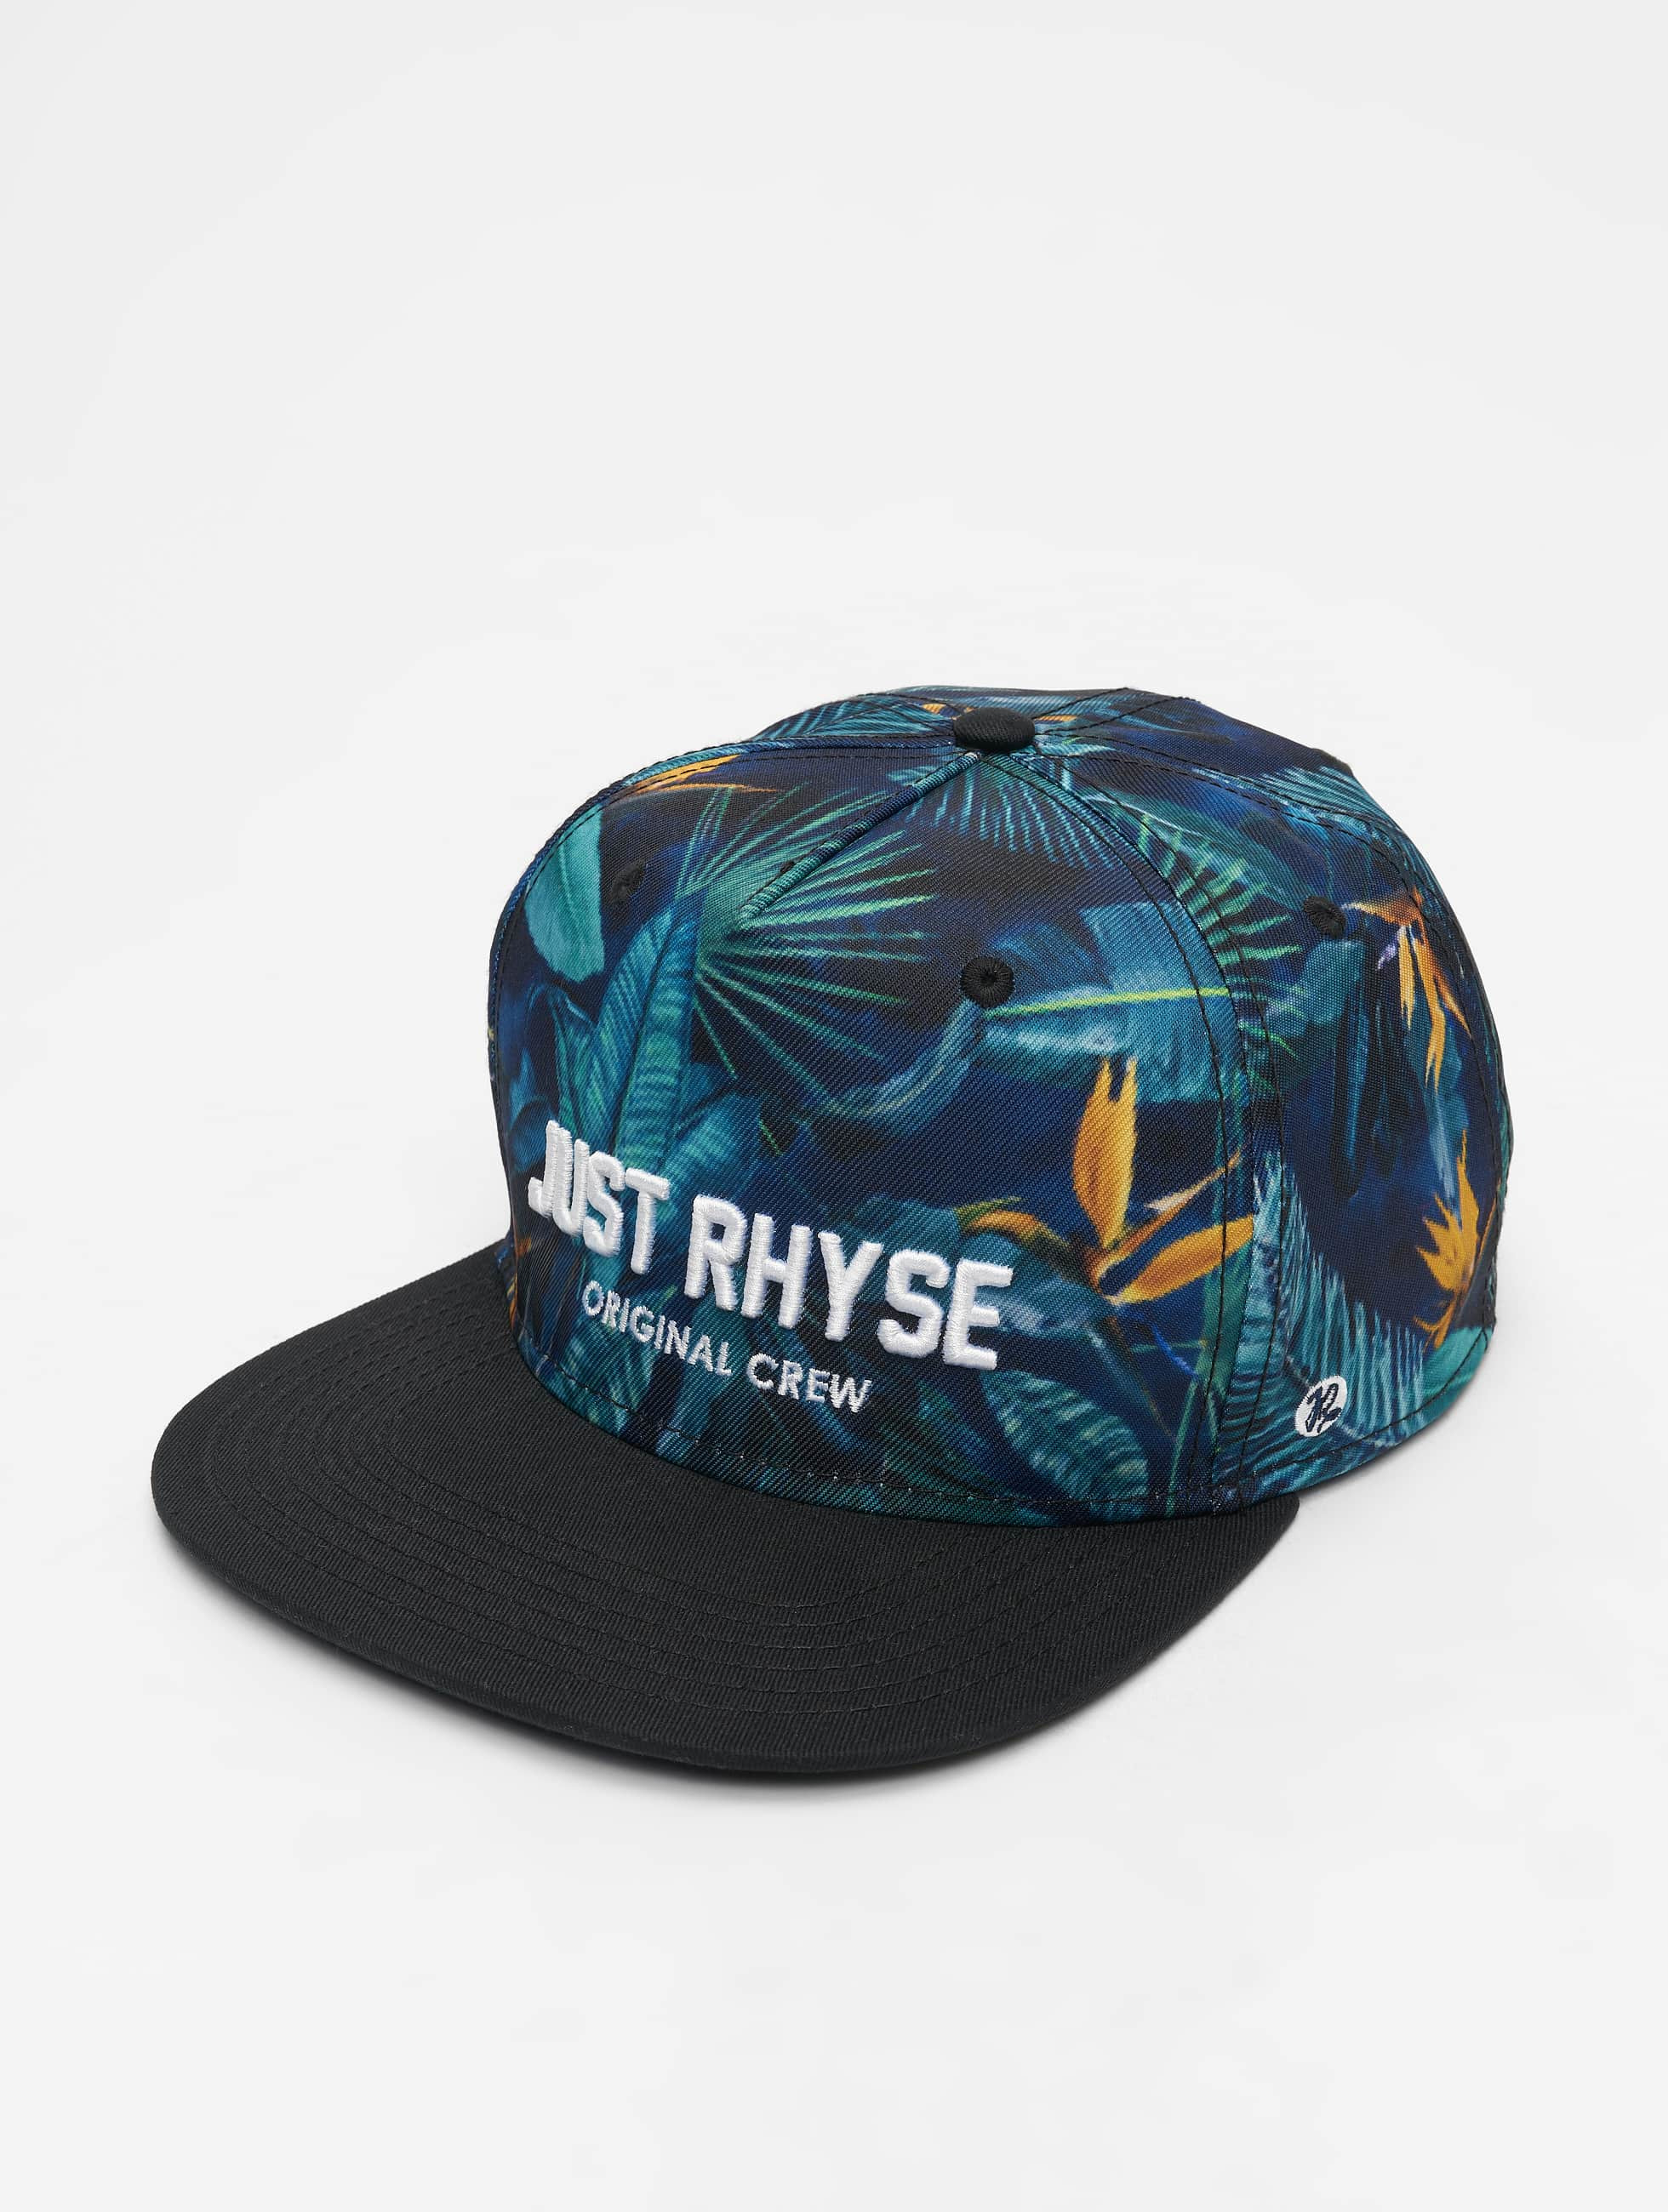 Just Rhyse / 5 Panel Caps Palm Habor in black Adjustable